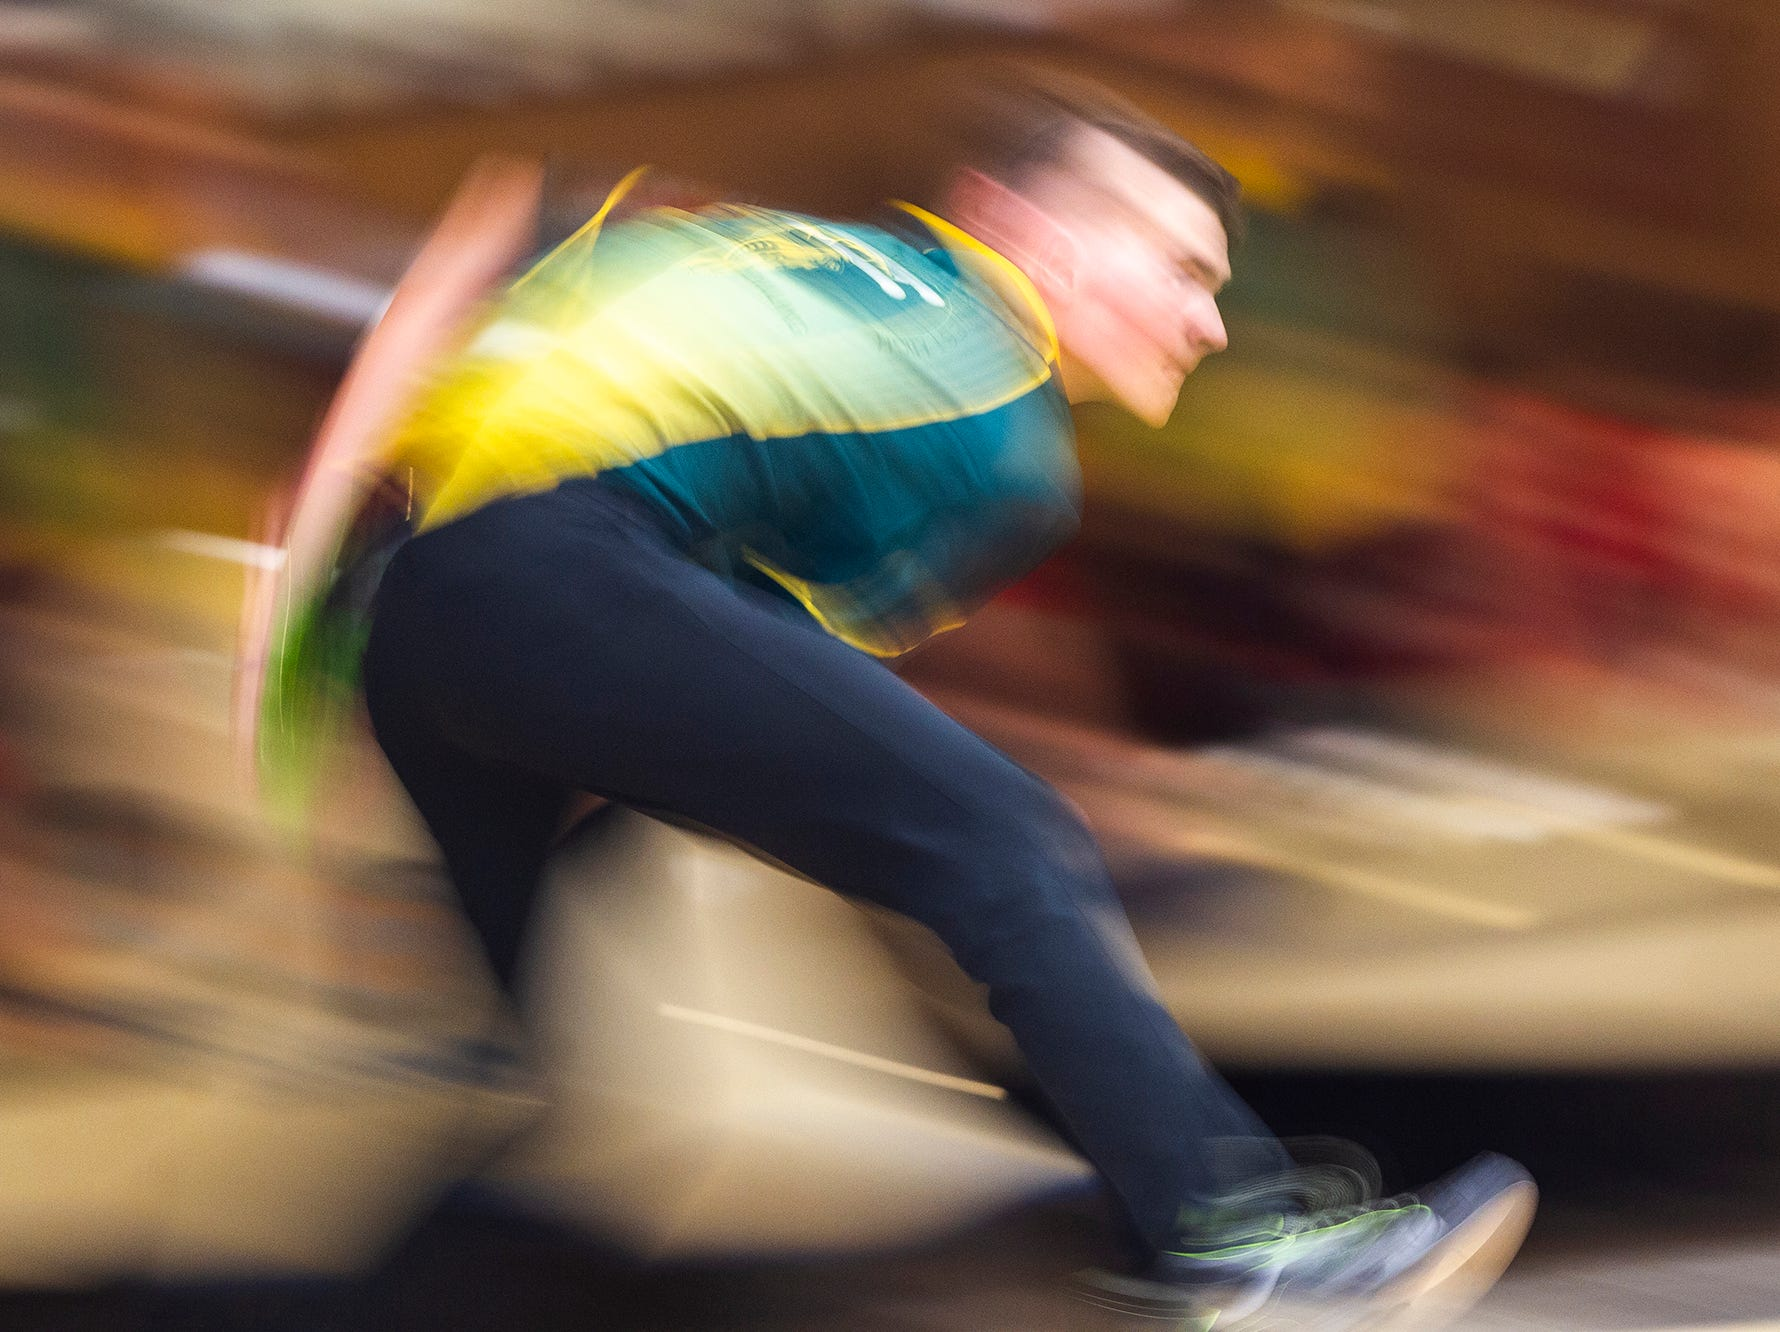 Iowa City West's Ryan Bys bowls during a cross-town bowling rivalry game on Tuesday, Nov. 20, 2018, at Colonial Lanes in Iowa City.